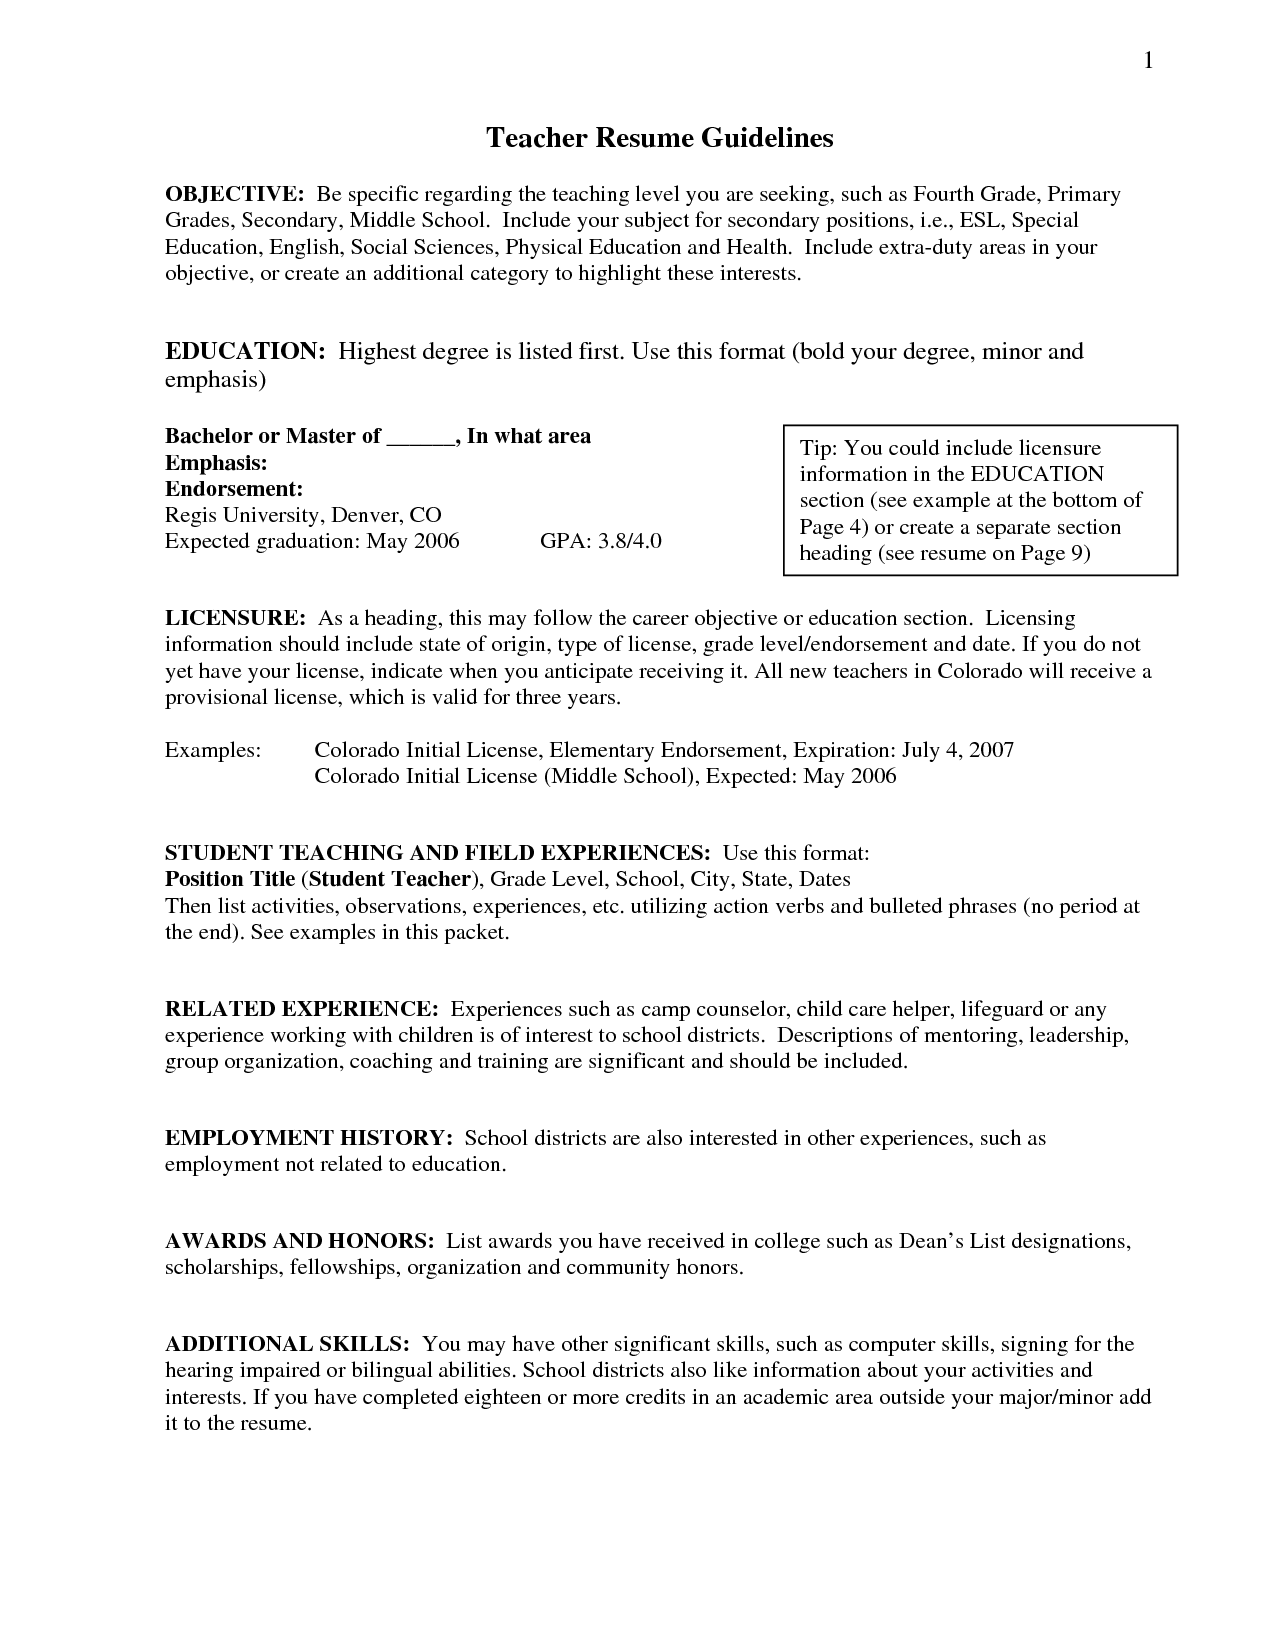 Resume Objectives For Teachers Resumes For Teachers Httpwww.teachersresumes.au Teachers .